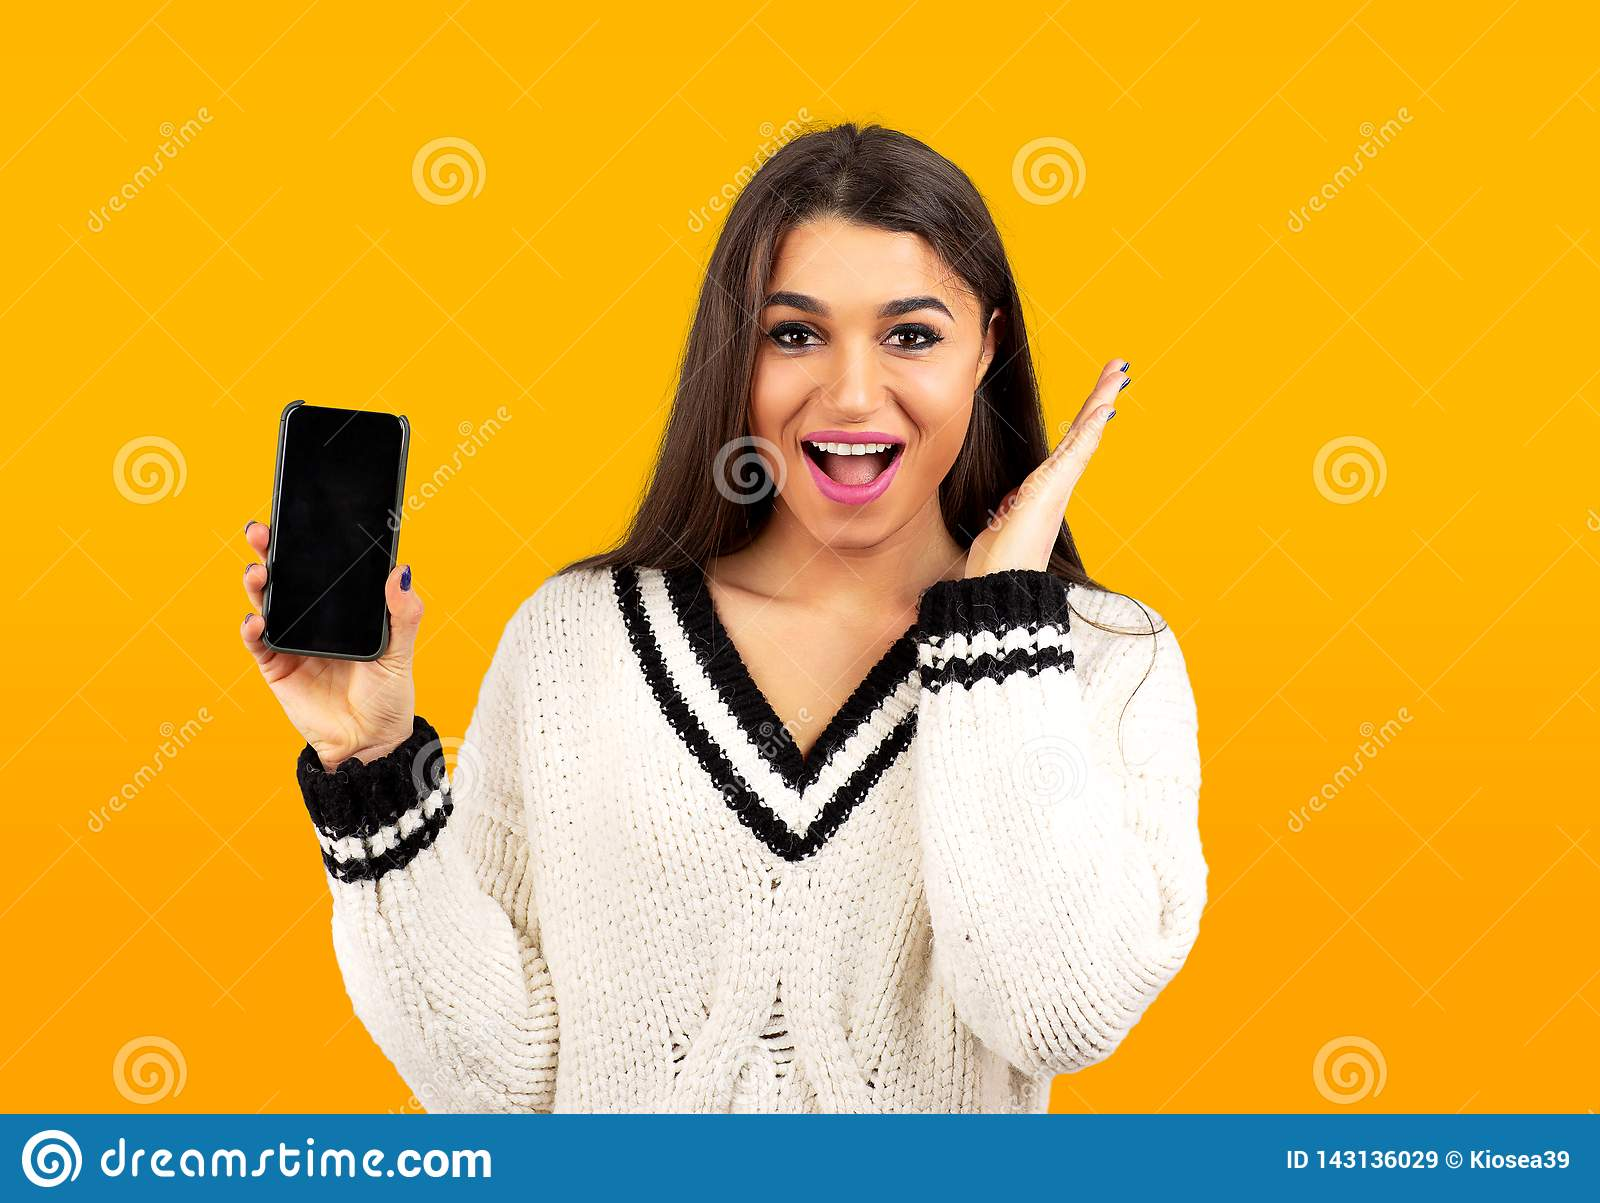 Surprised happy woman in white sweater showing a new smartphone